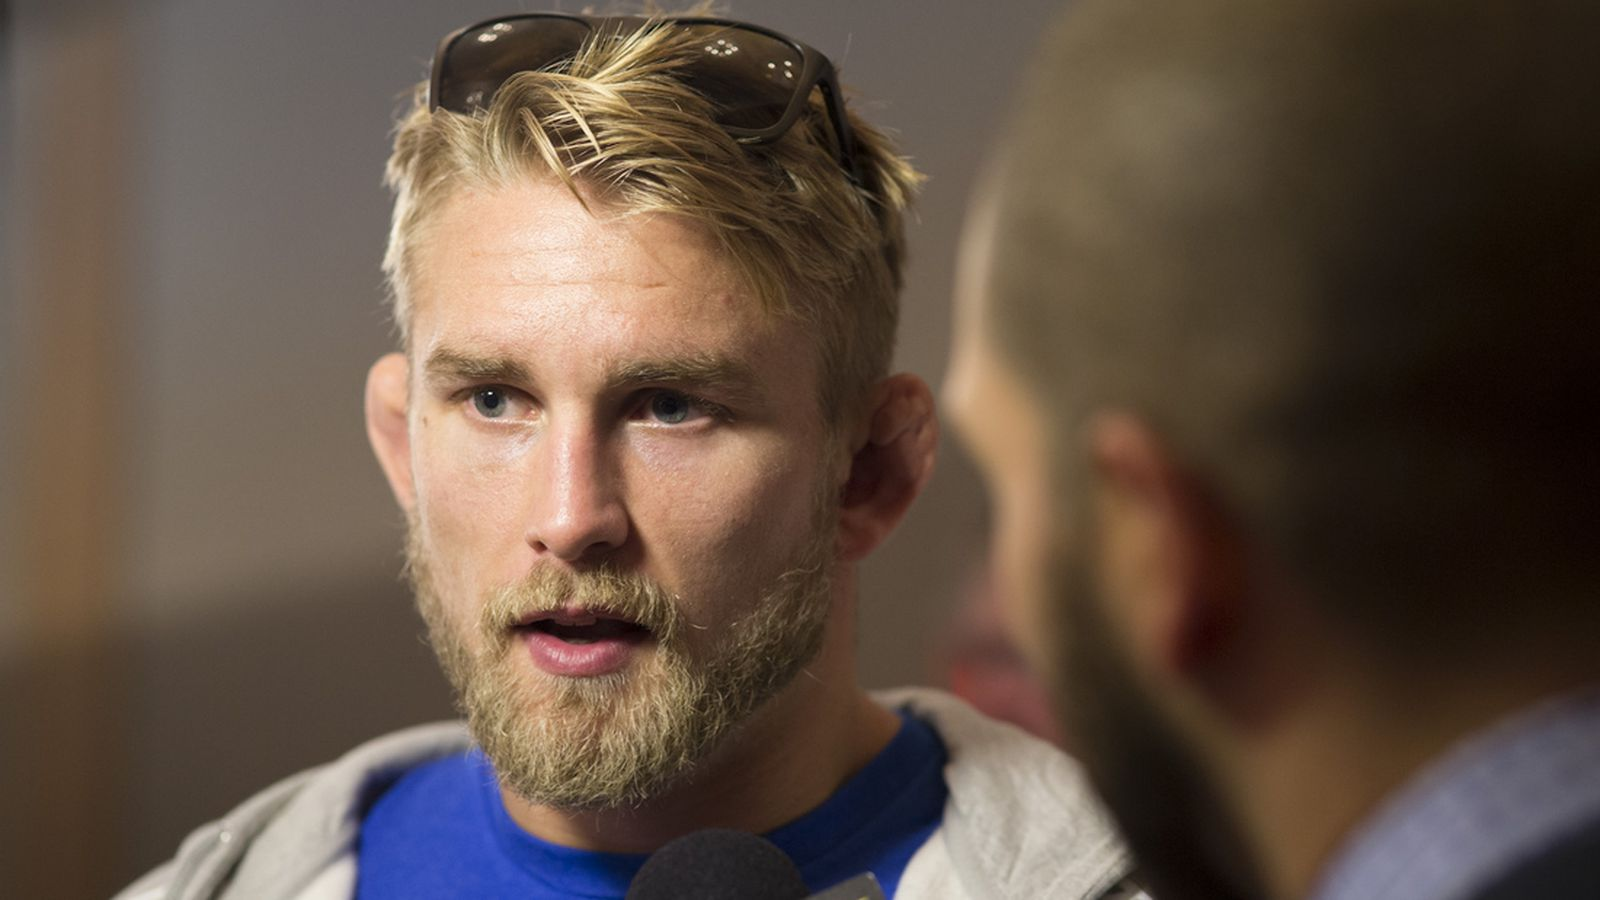 Alexander Gustafsson Wants To Take UFC Title From Jon